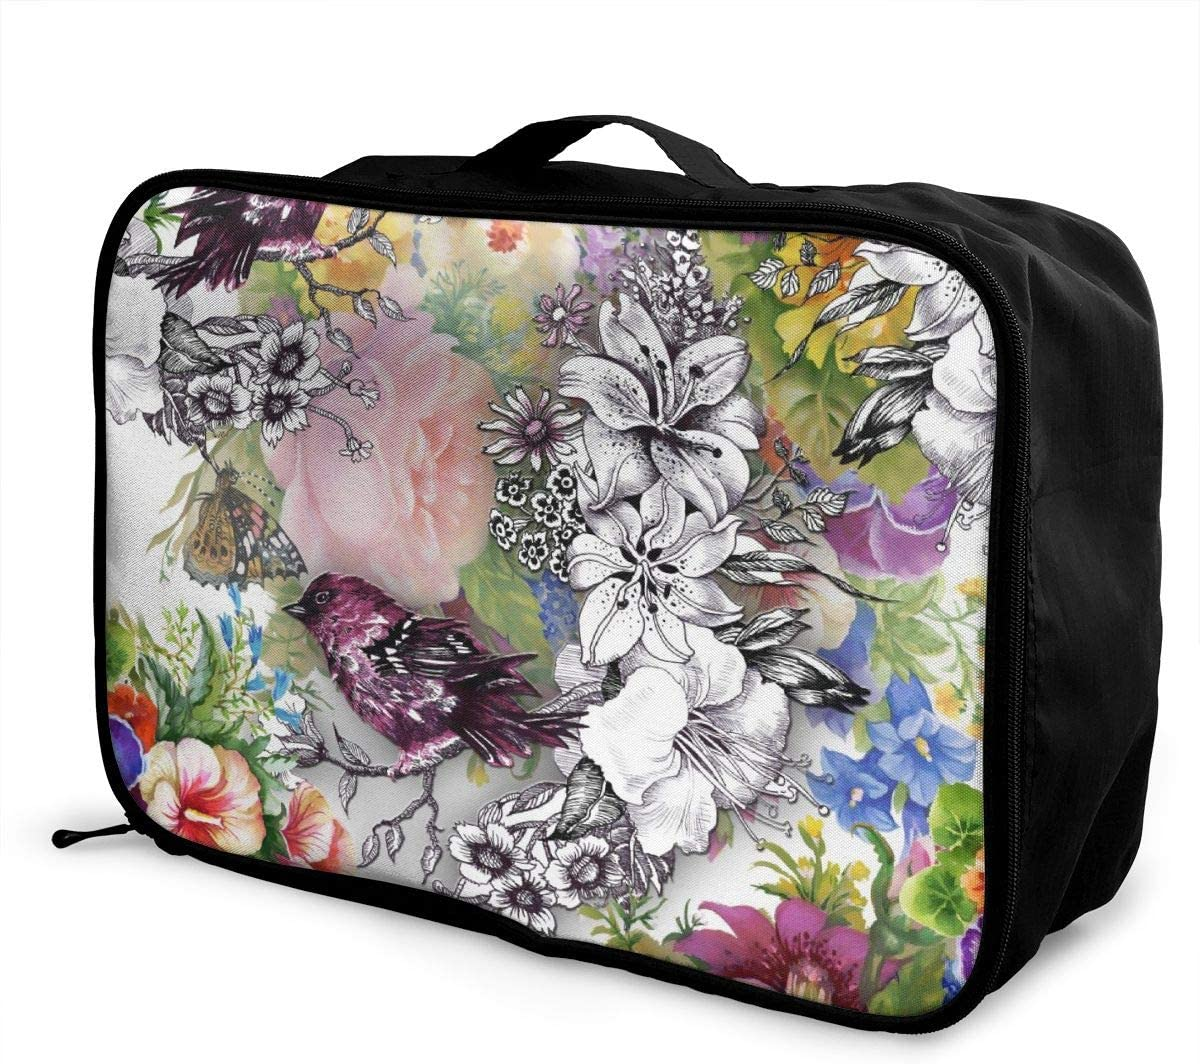 Yunshm Exotic Birds With Flowers Colorful On White Background Personalized Trolley Handbag Waterproof Unisex Large Capacity For Business Travel Storage